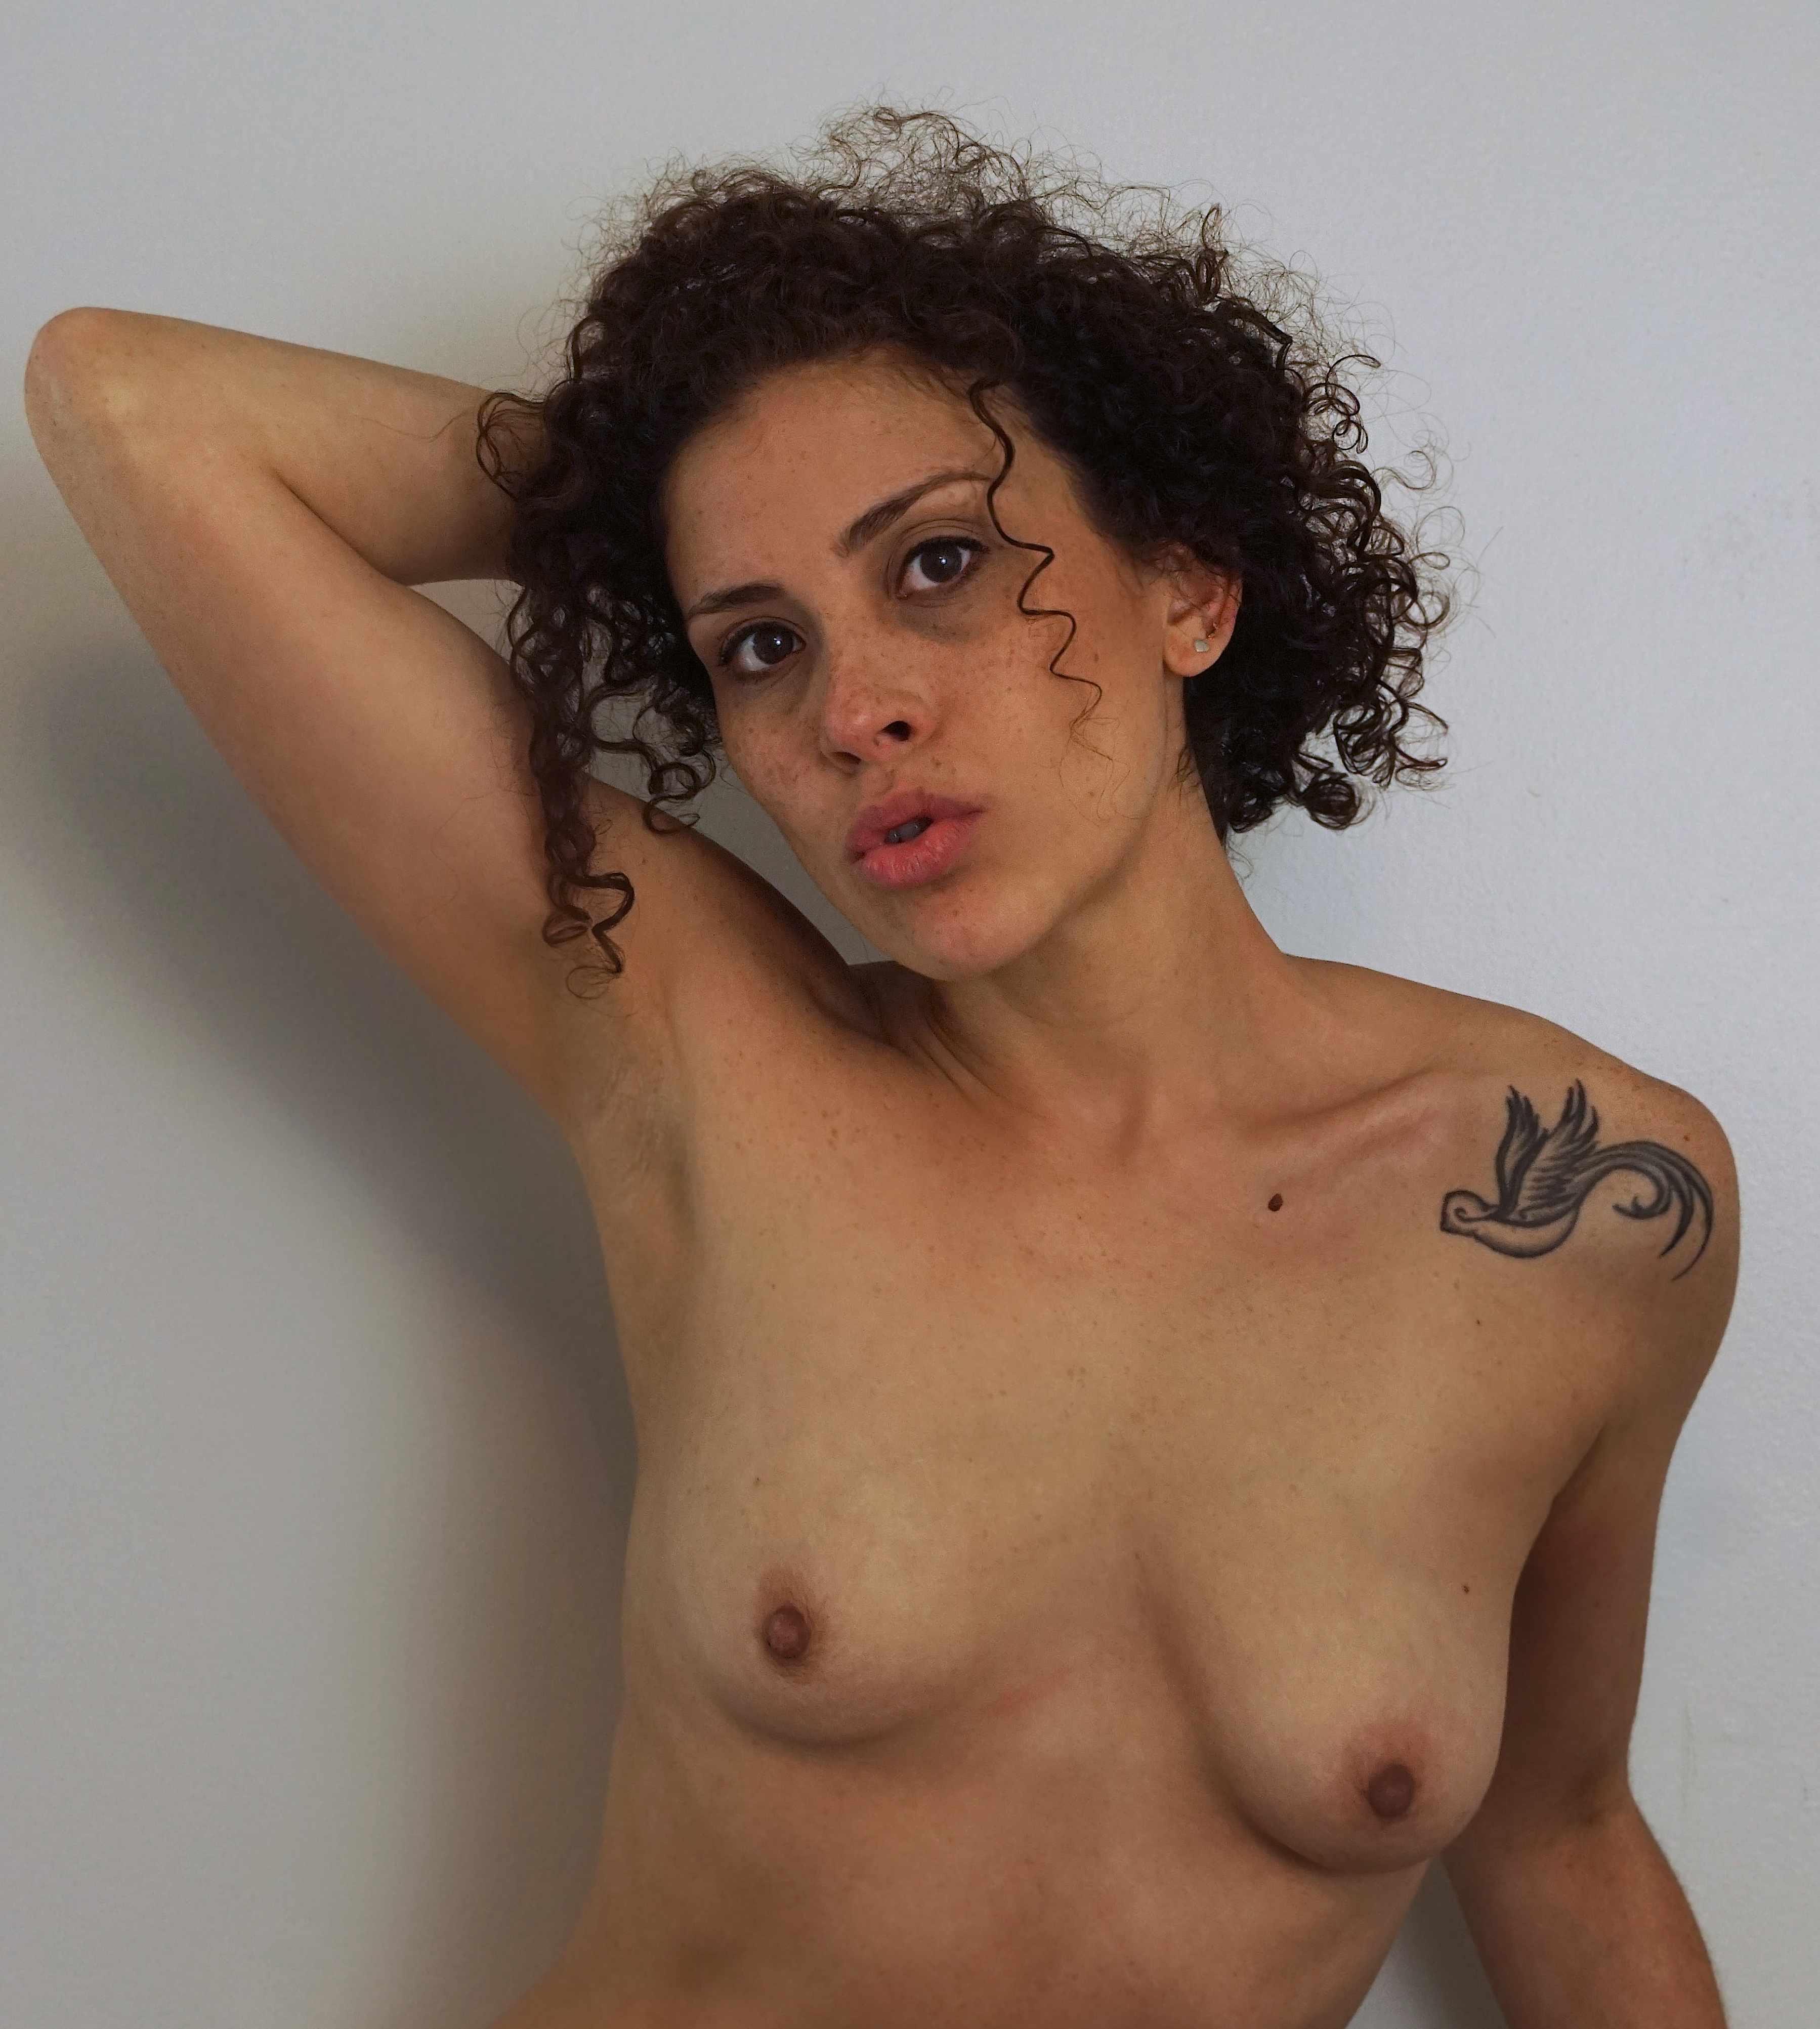 Bare-breasted Puerto Rican woman